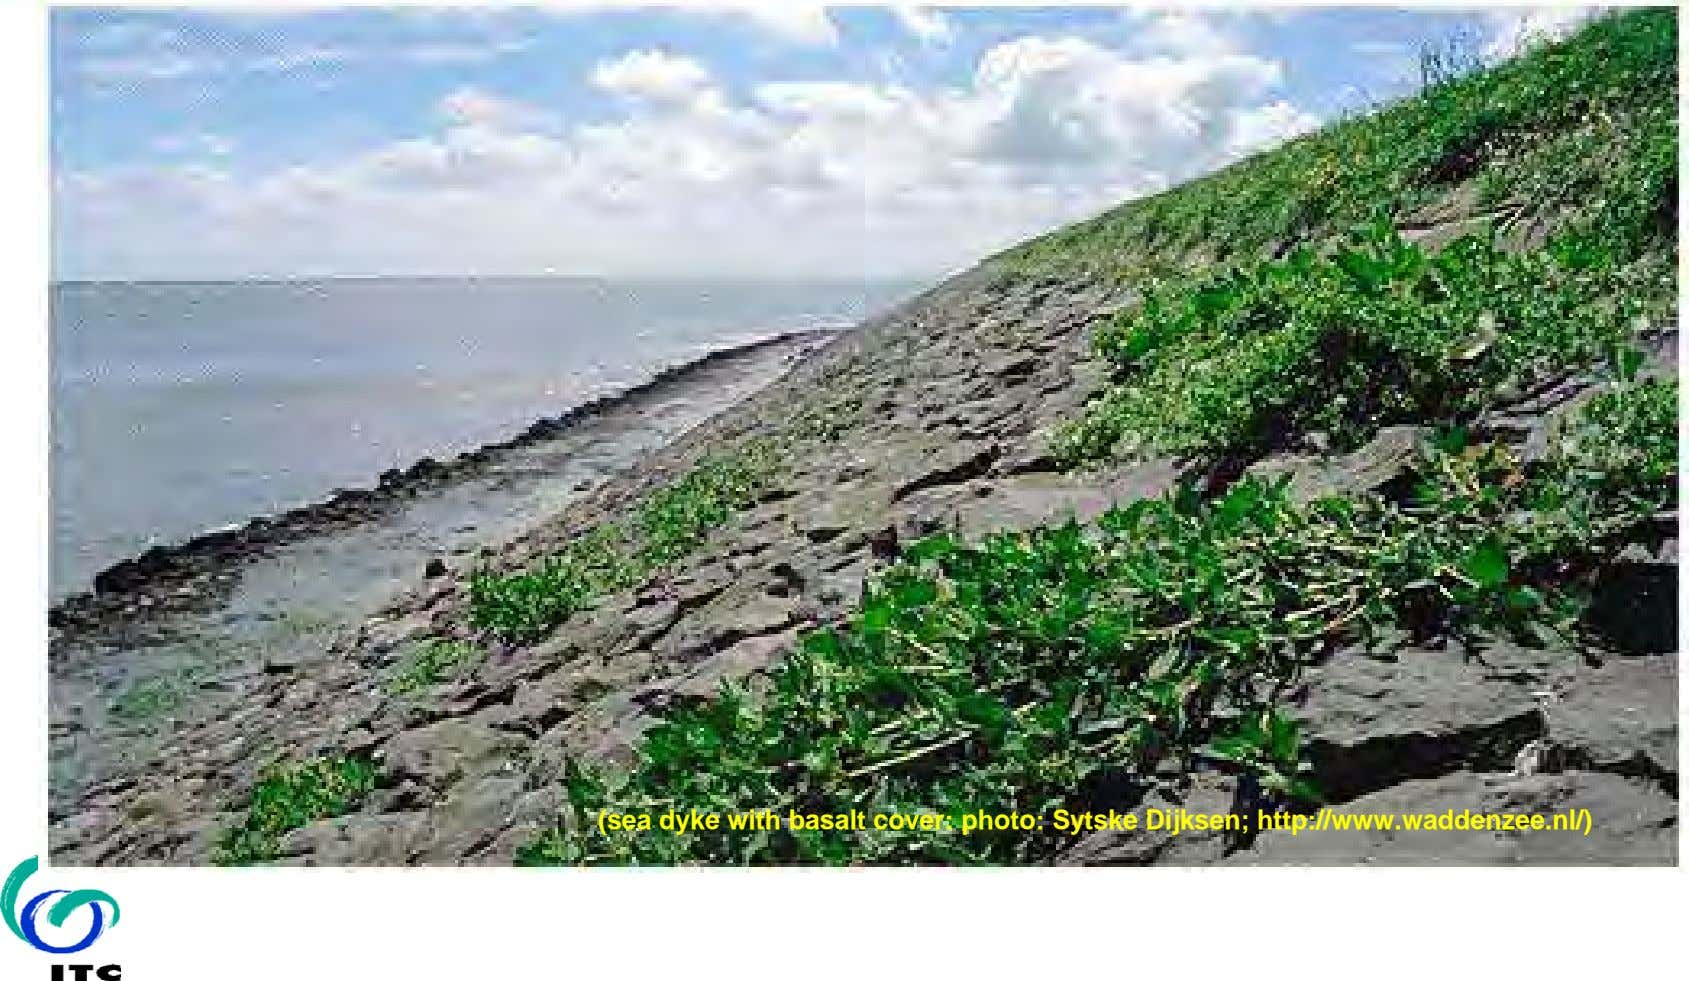 (sea dyke with basalt cover: photo: Sytske Dijksen; http://www.waddenzee.nl/)